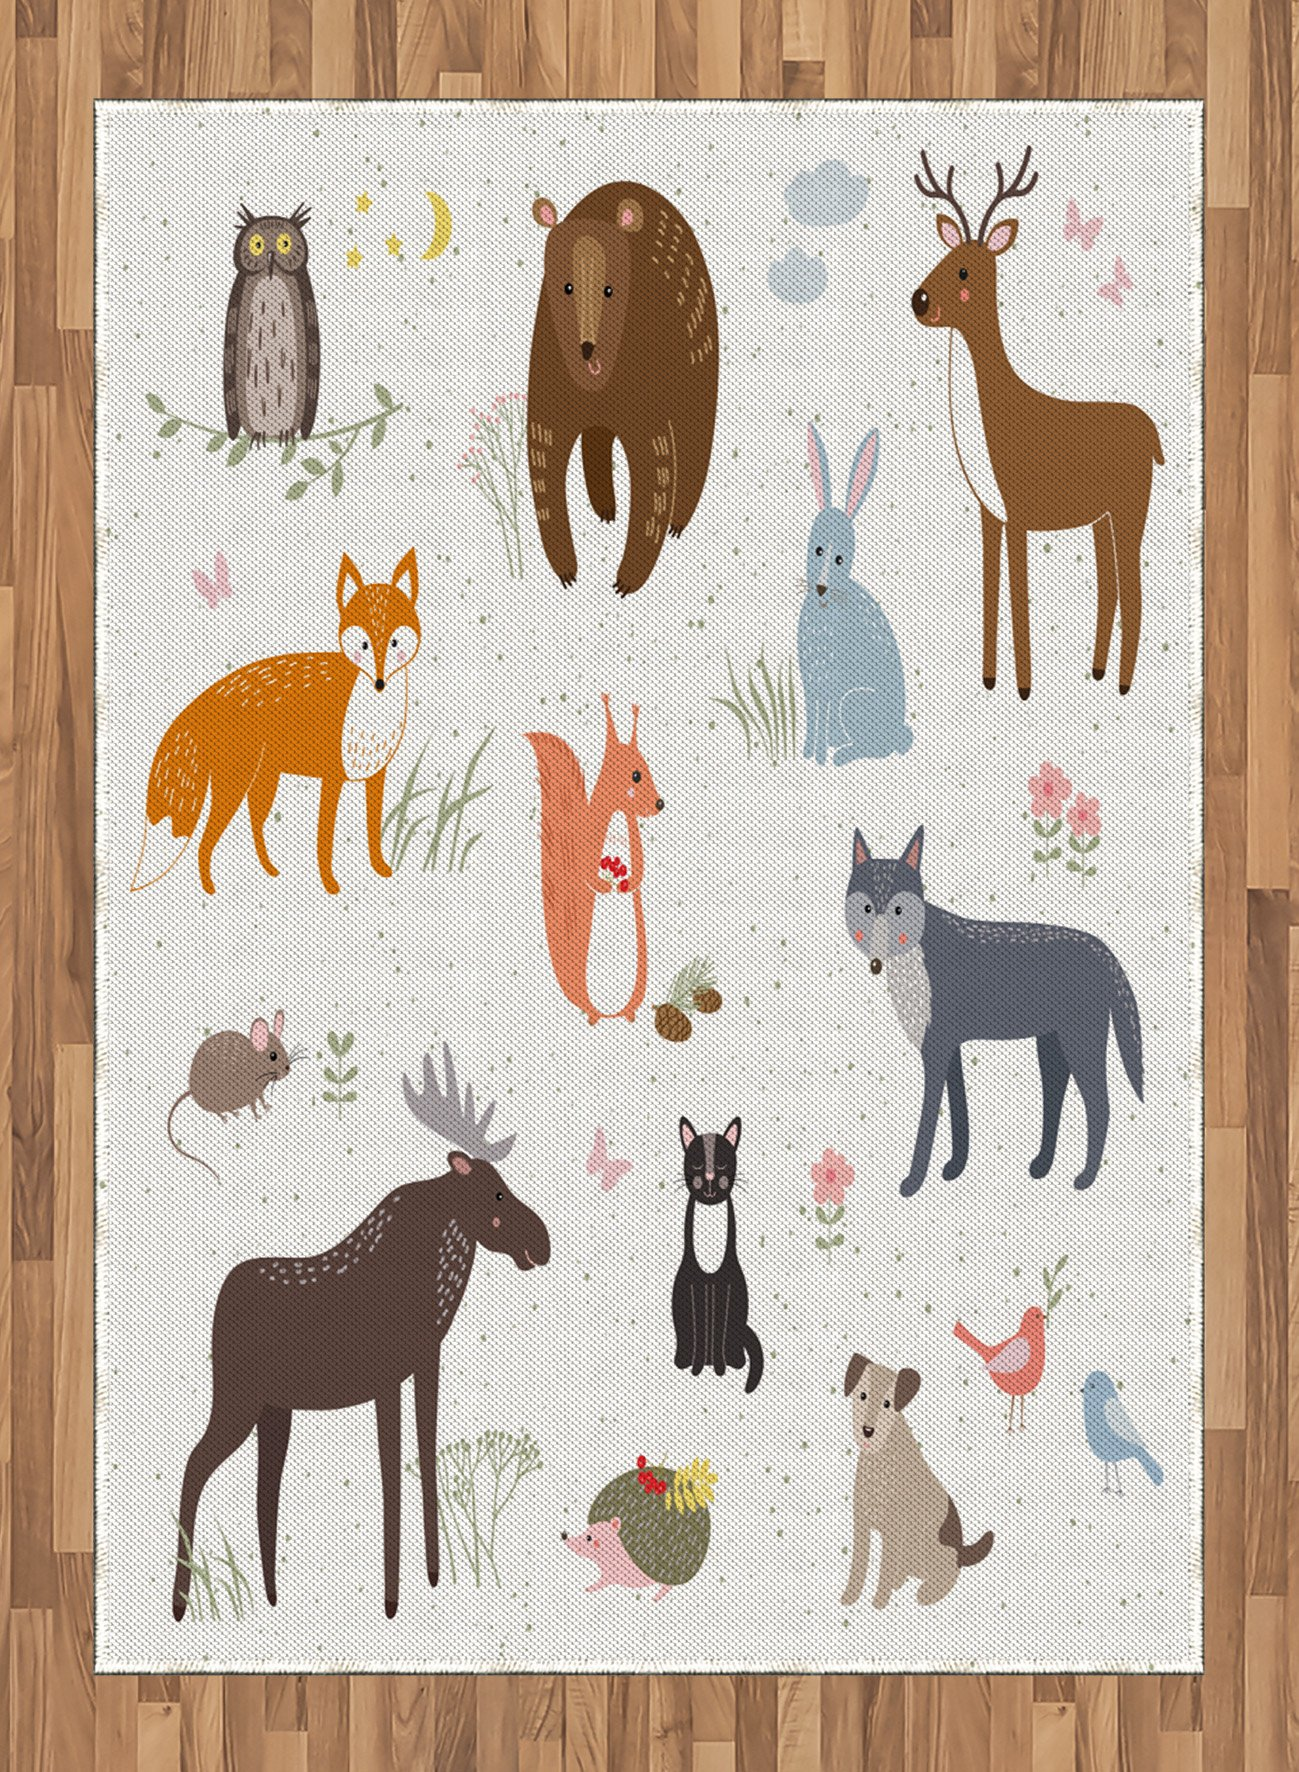 Cabin Area Rug by Lunarable, Cute Animals in the Springtime Meadow Childish Woodland Fauna Kids Baby Room Nursery, Flat Woven Accent Rug for Living Room Bedroom Dining Room, 5.2 x 7.5 FT, Multicolor